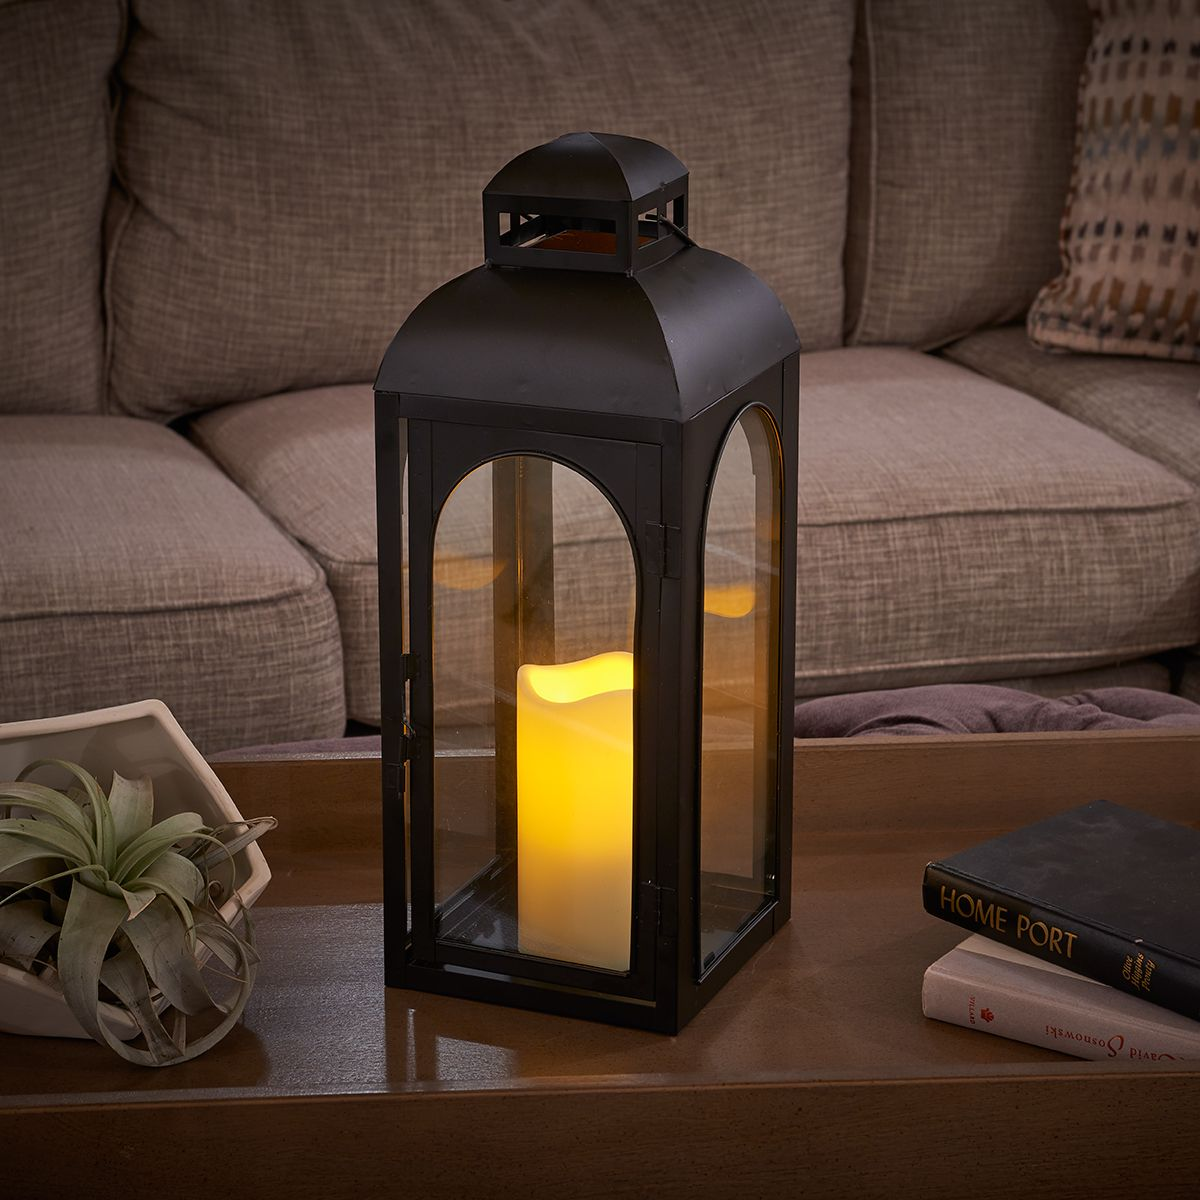 Moreno Candle Lantern: Flameless candle illuminates warm light on a timed setting - 6h on / 18h off. Perfect for those longer, dark days of winter or for summer evenings outdoors. #CandleLantern #Lantern #BatteryPowered #DecorativeLighting